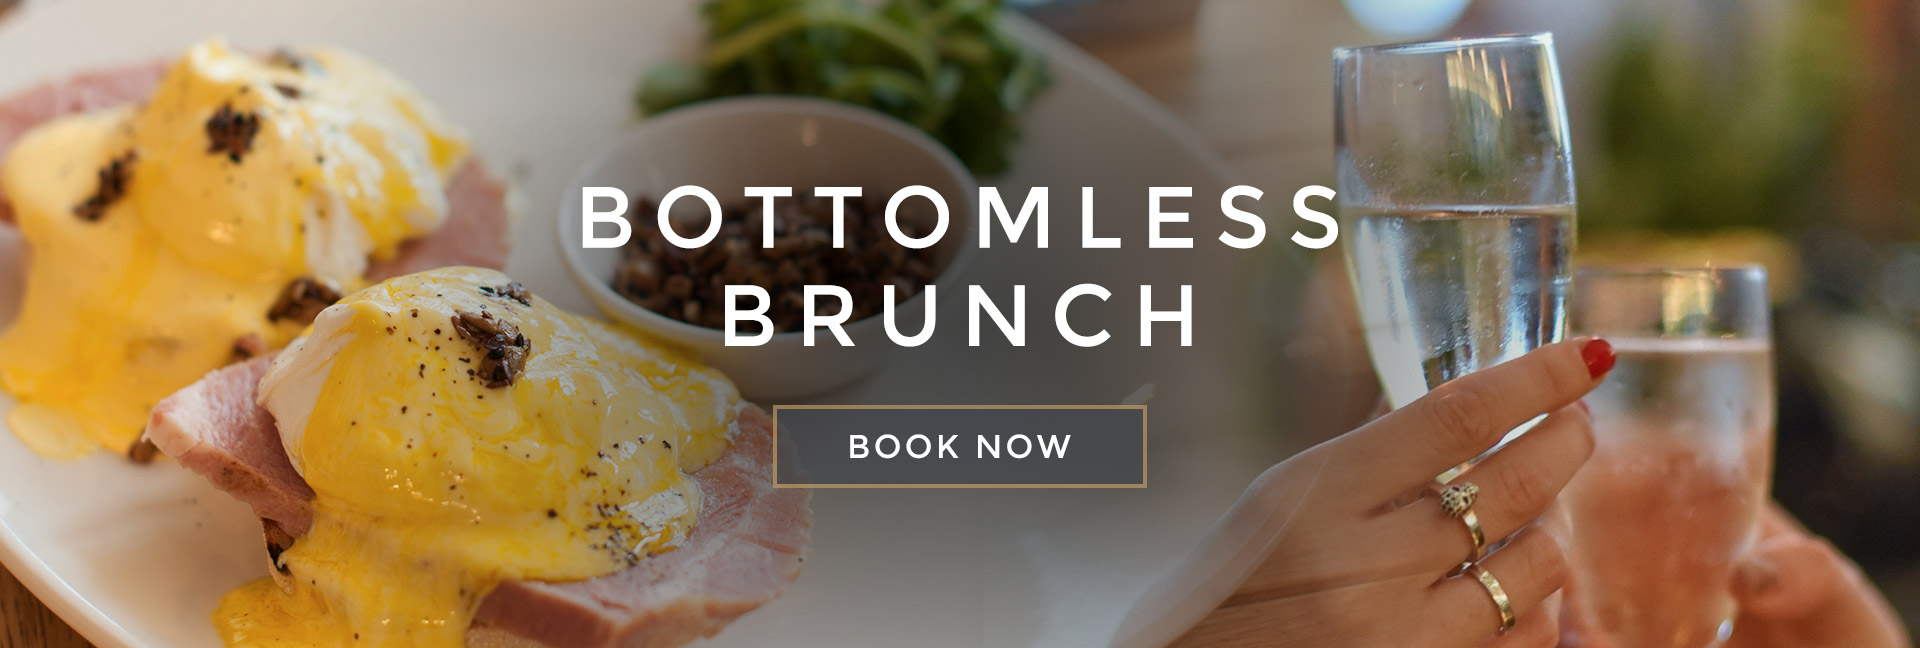 Bottomless Brunch at All Bar One Sheffield - Book now